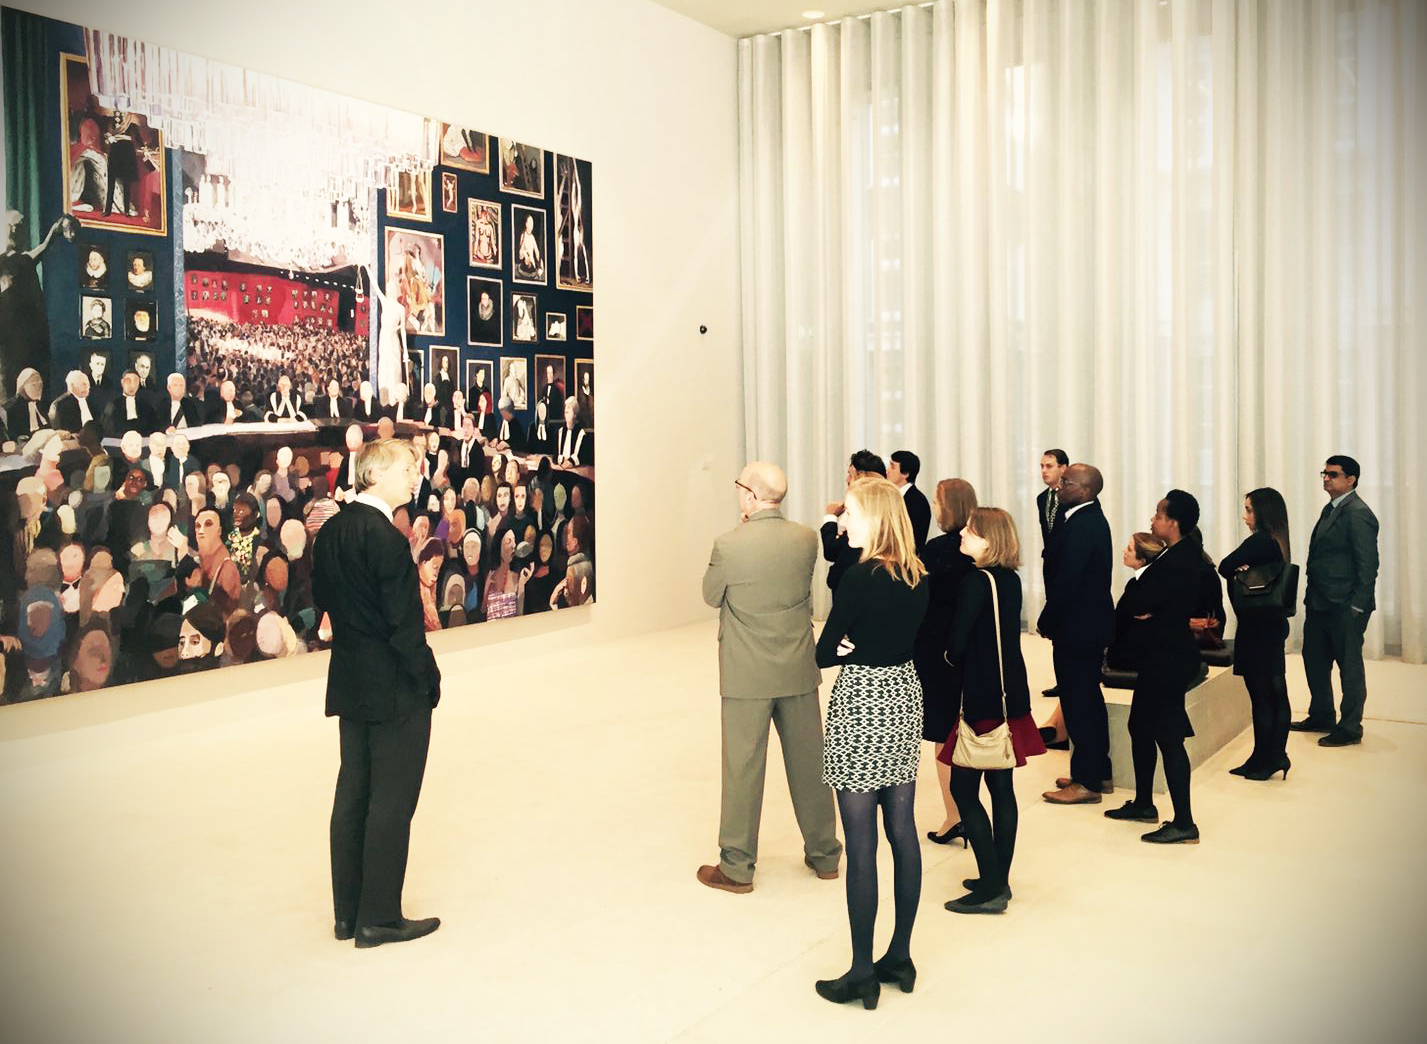 Delegates on the Anglo Dutch Exchange admire artwork at the Hague